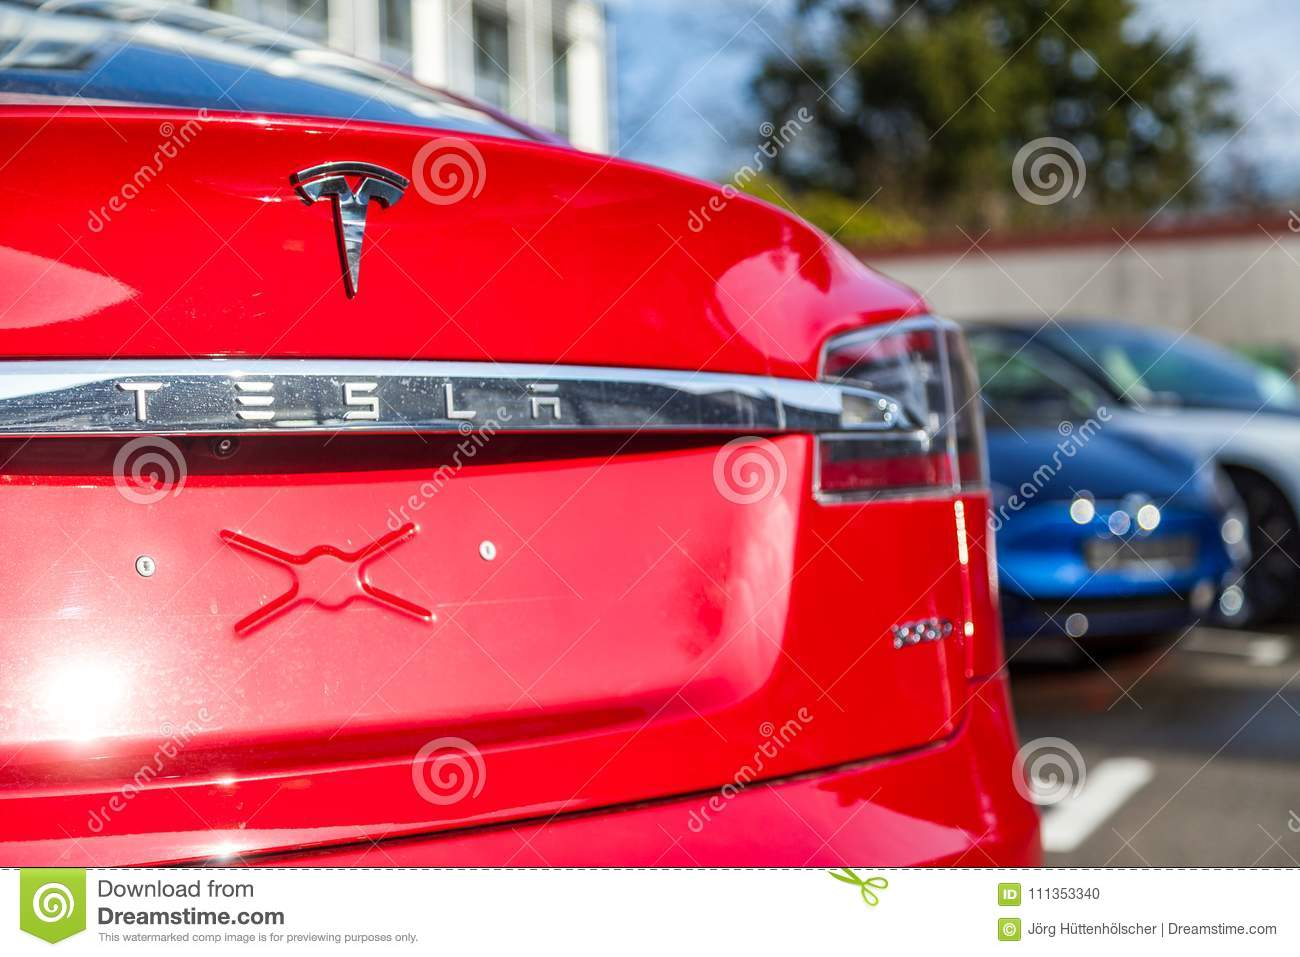 Tesla logo on a Tesla car